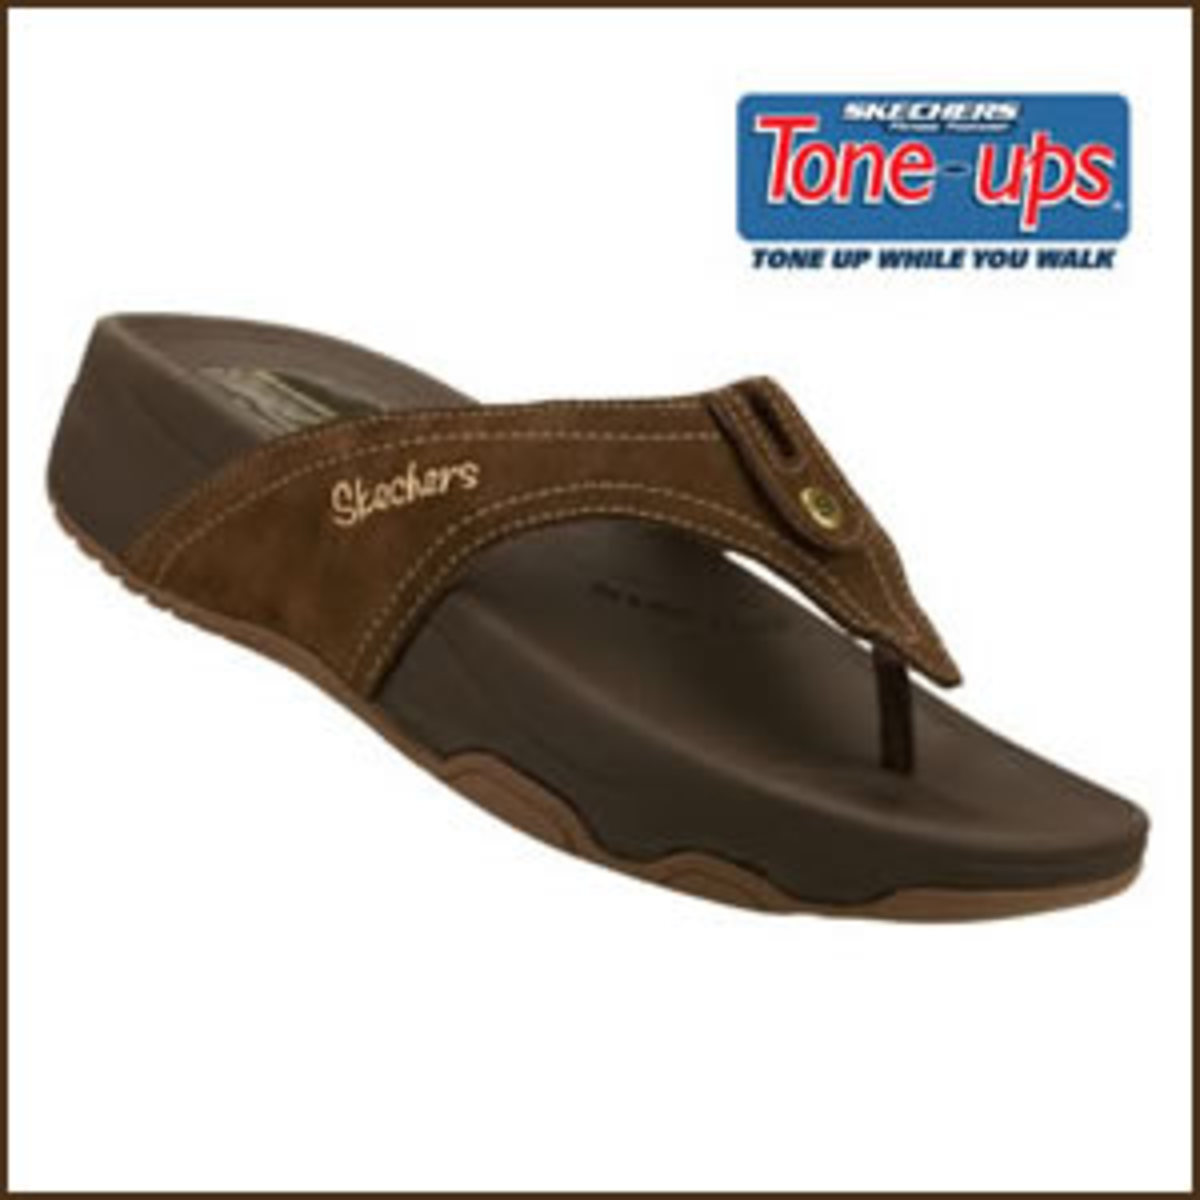 One of the extensive range of Skechers Tone Ups Styles